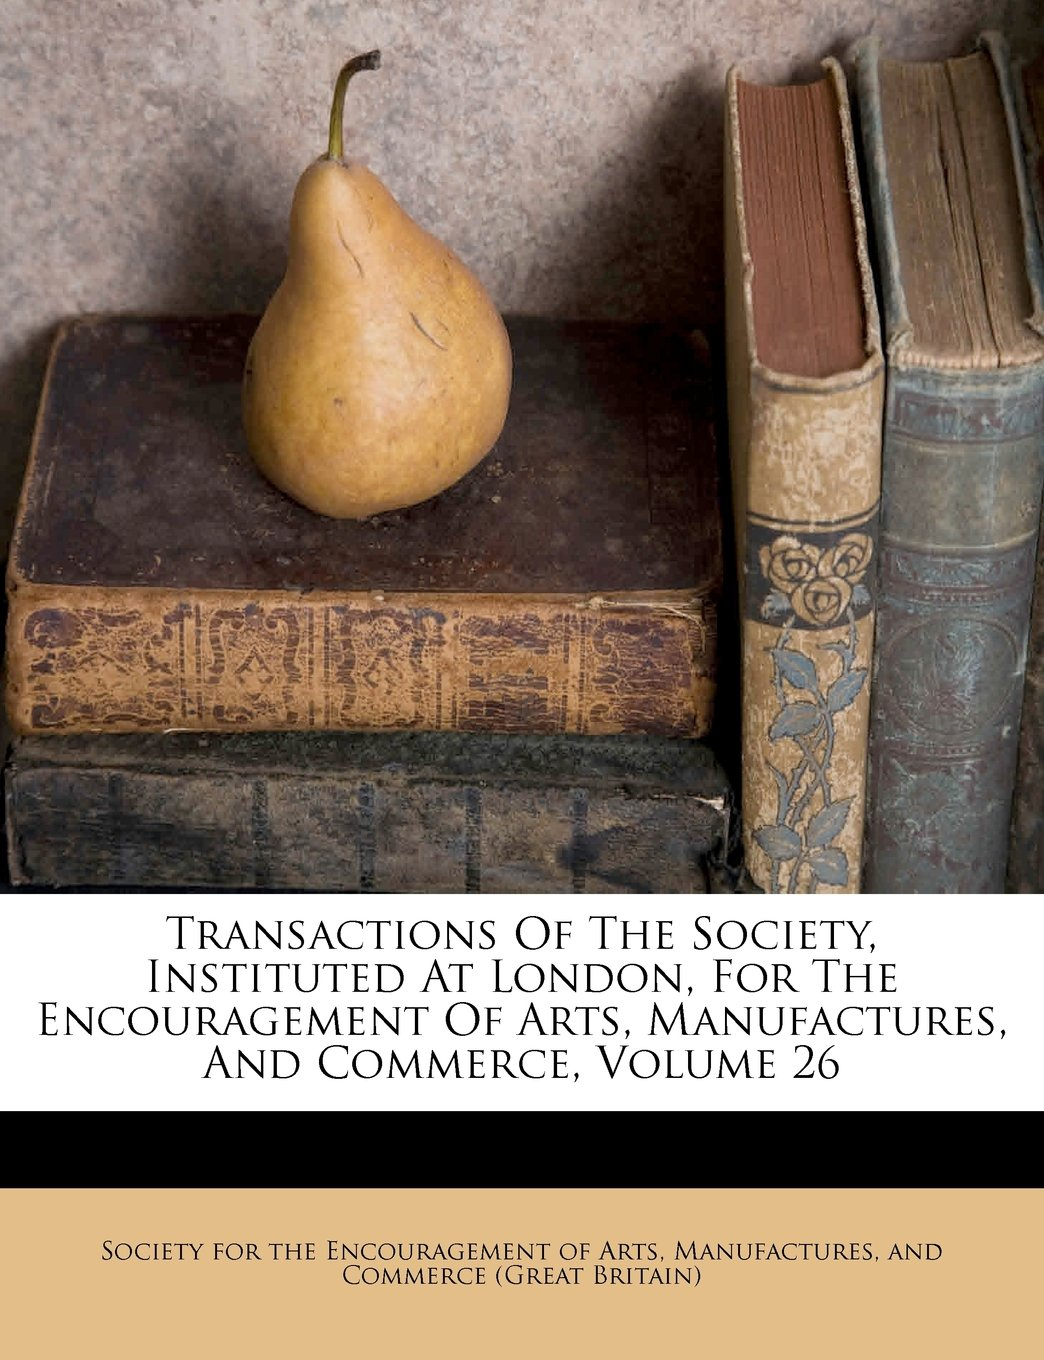 Transactions Of The Society, Instituted At London, For The Encouragement Of Arts, Manufactures, And Commerce, Volume 26 ebook